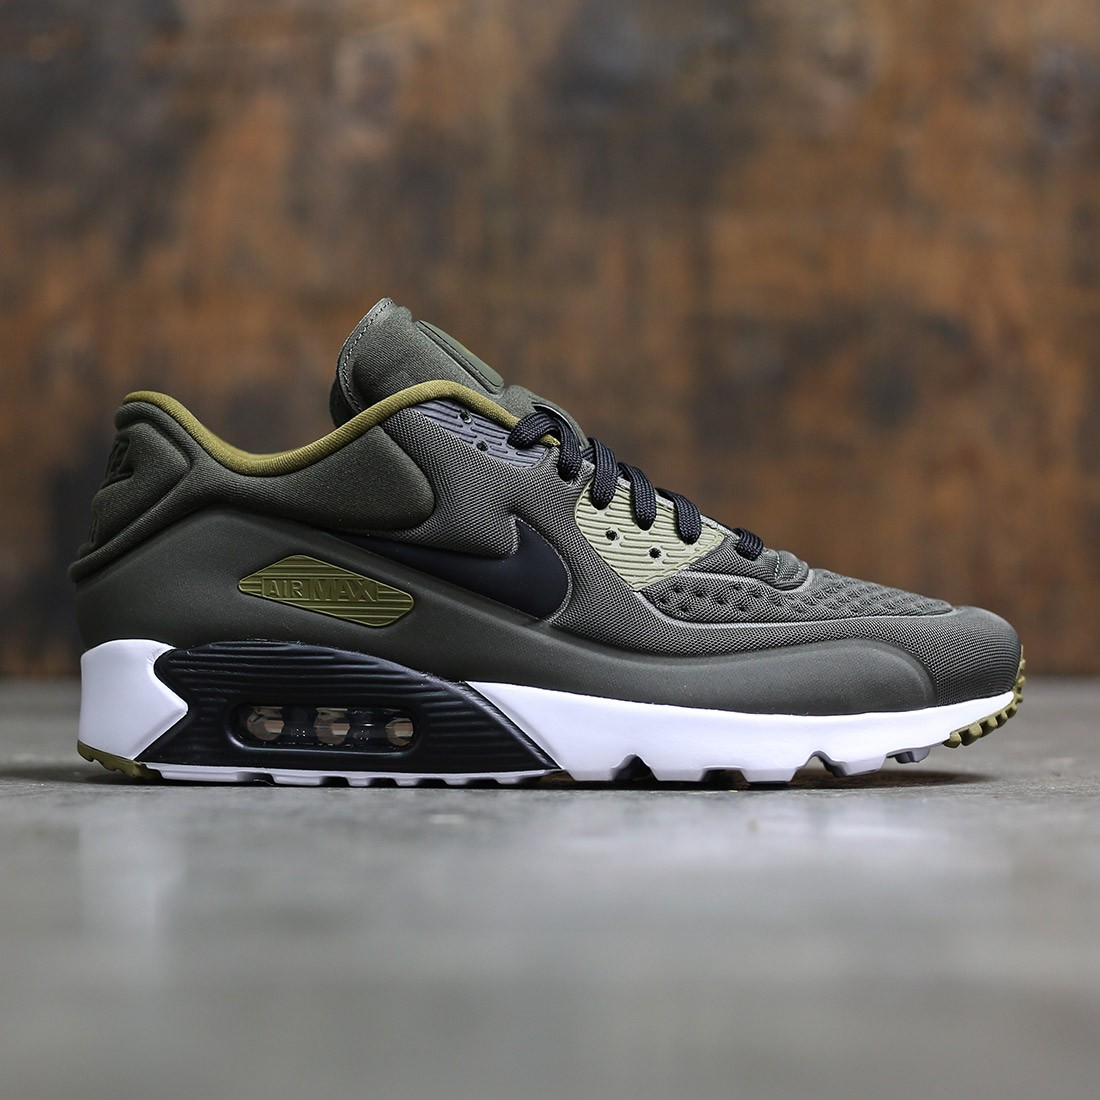 1b8cc38a1735 Nike Men Air Max 90 Ultra Se (cargo khaki   black-olive flak-white)